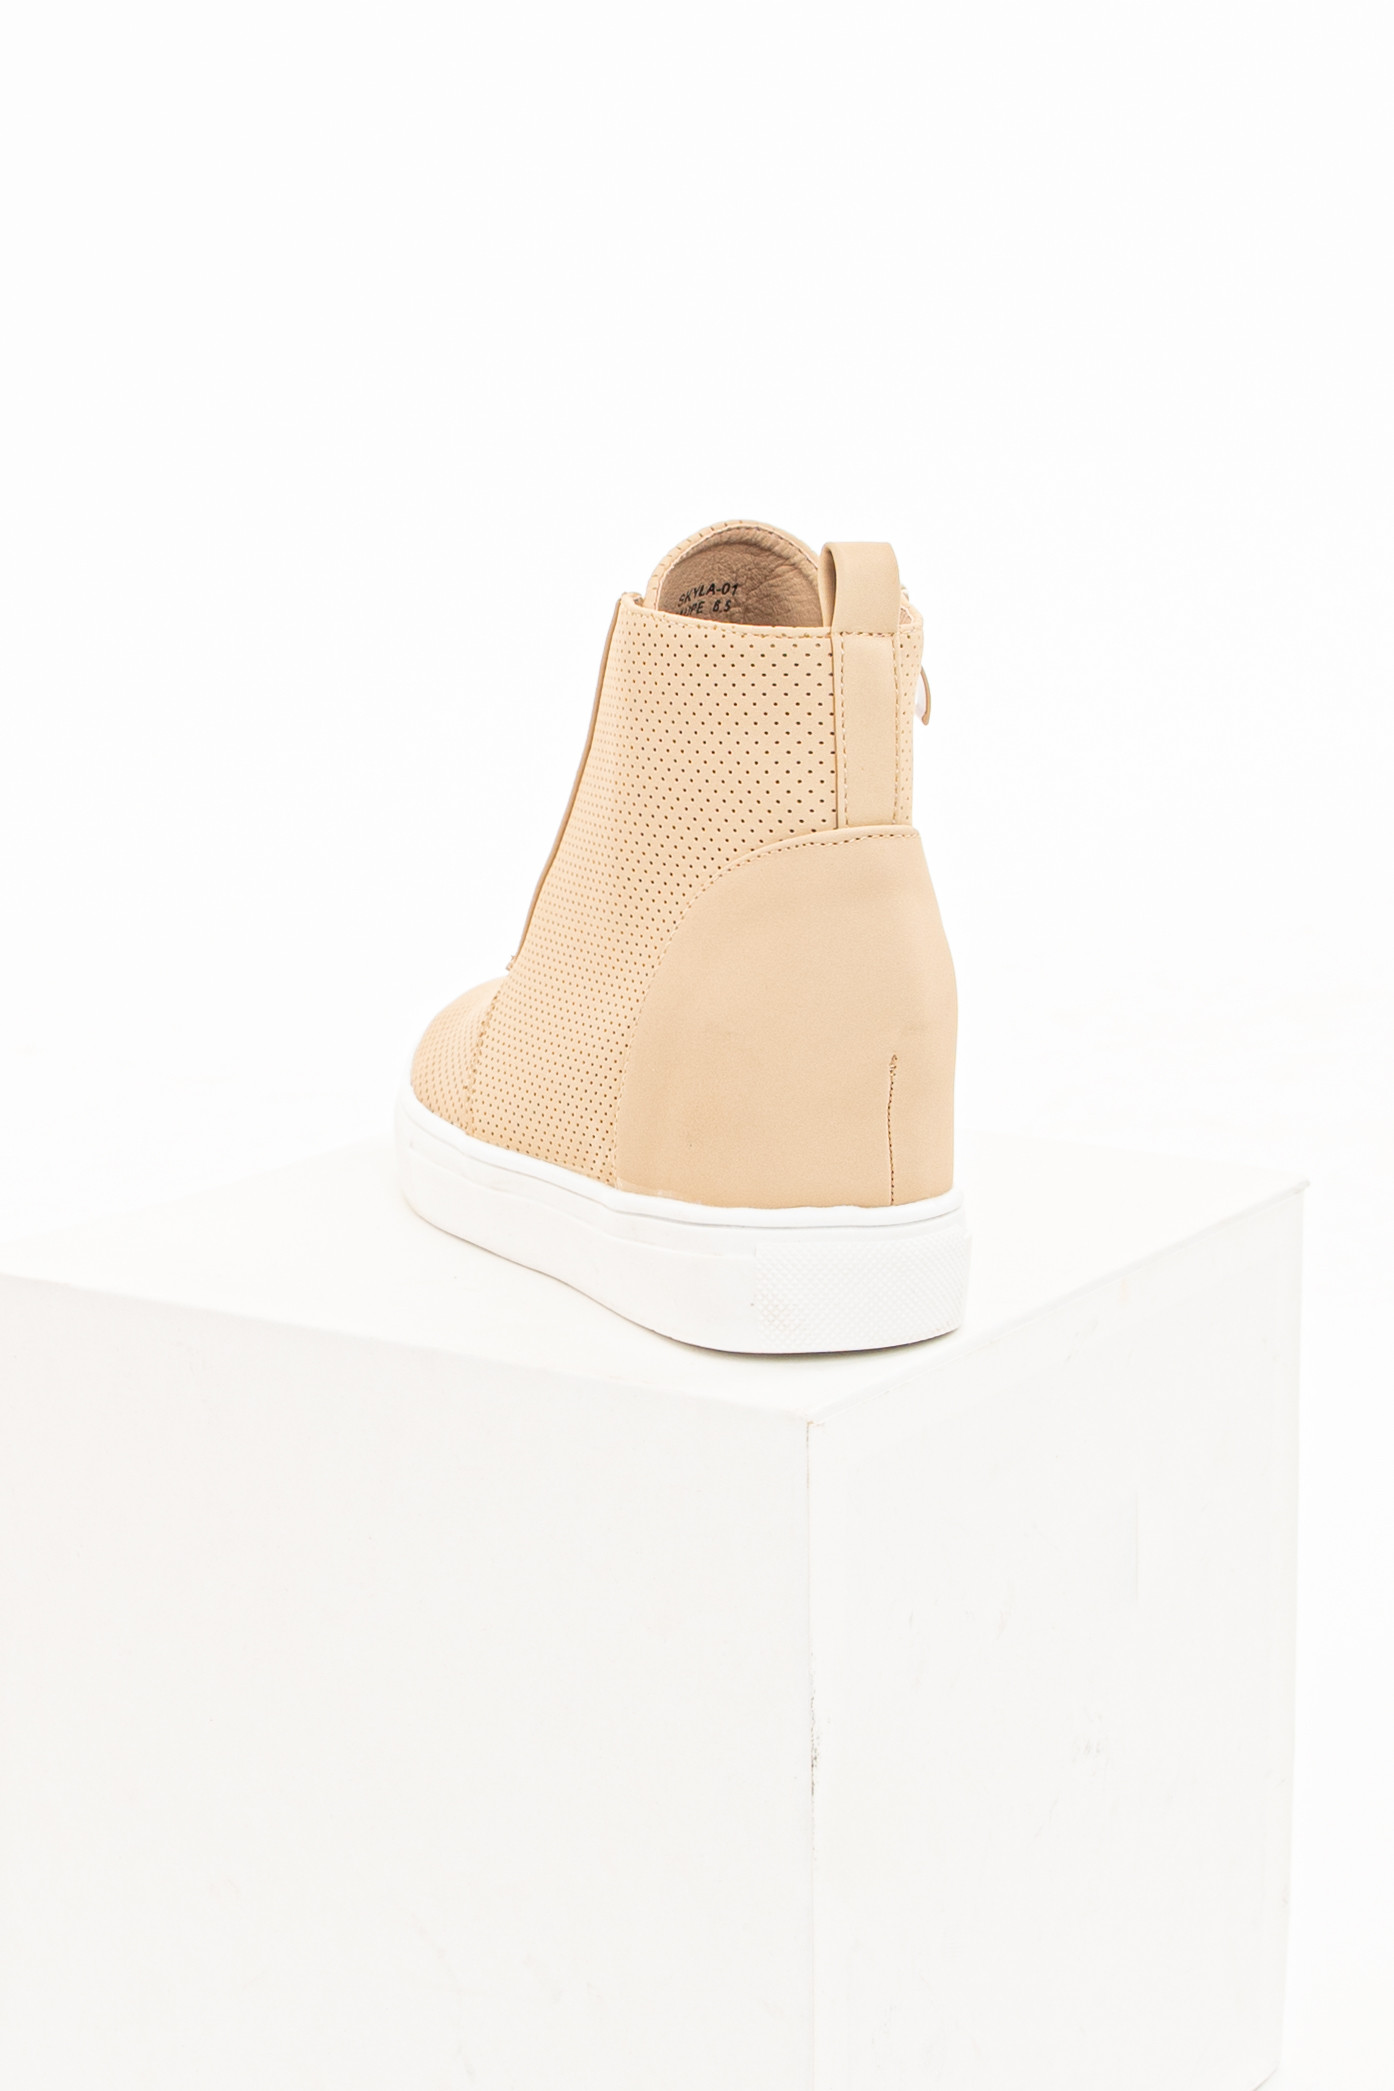 Beige Faux Leather Perforated Sneaker Wedges